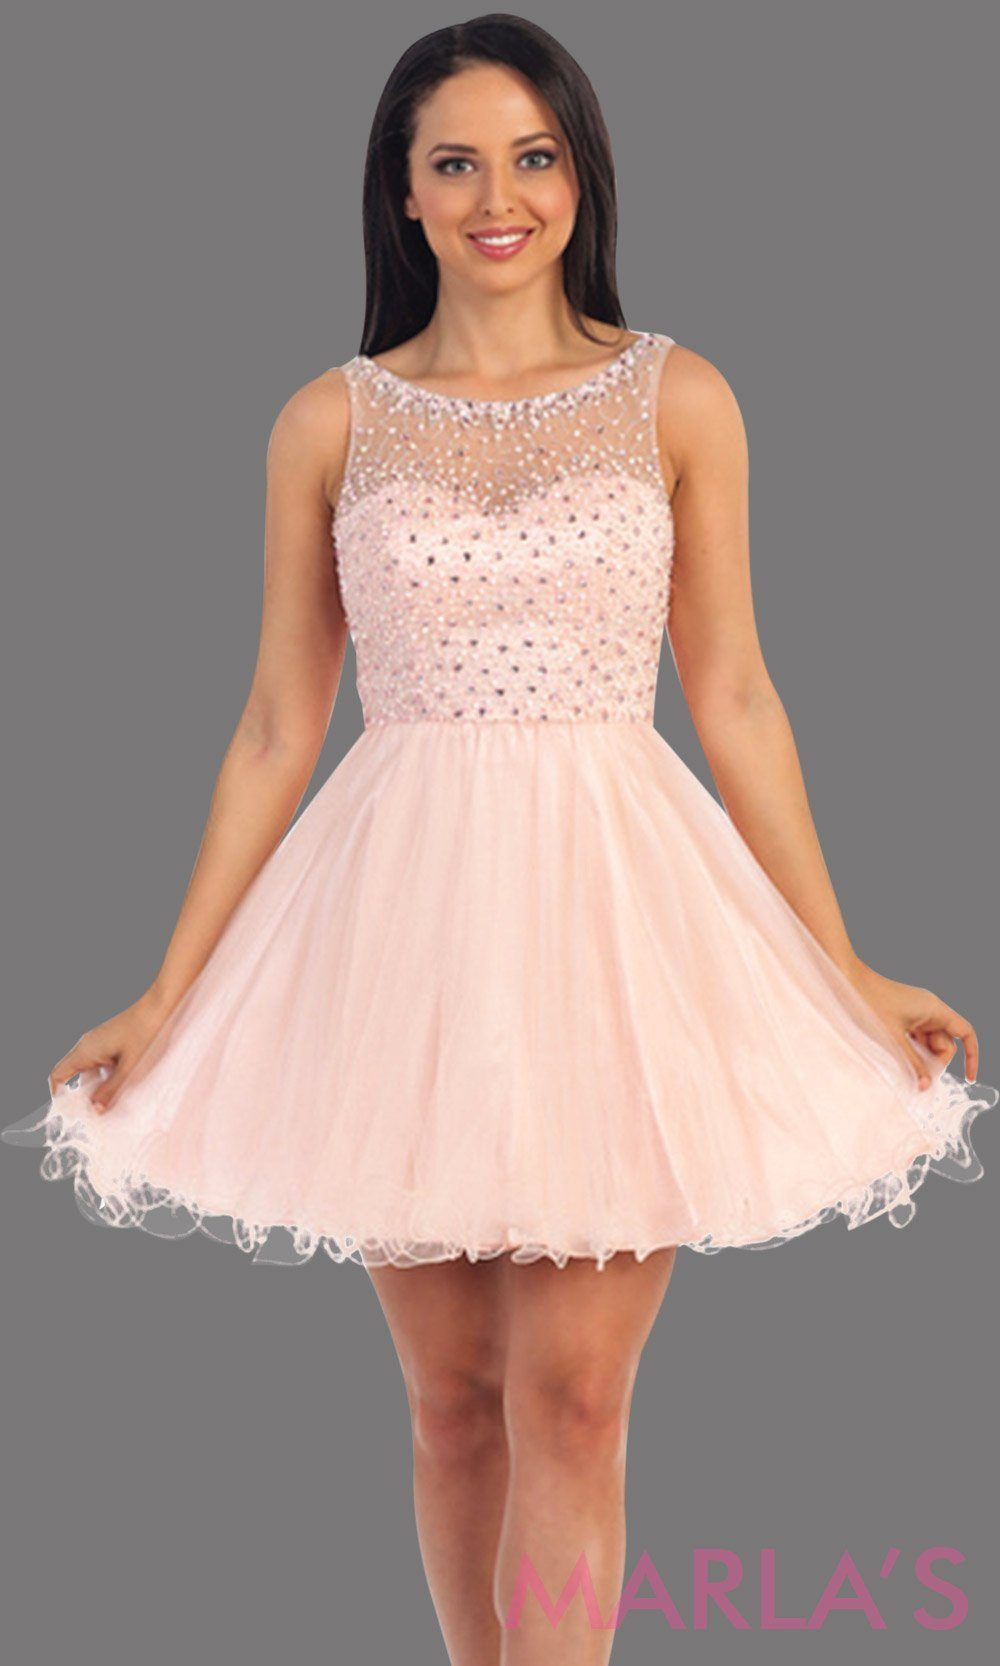 ed44b75c3d3 Short blush pink high neck graduation dress with beaded top. It has puffy  tulle skirt. Perfect for grade 8 grad